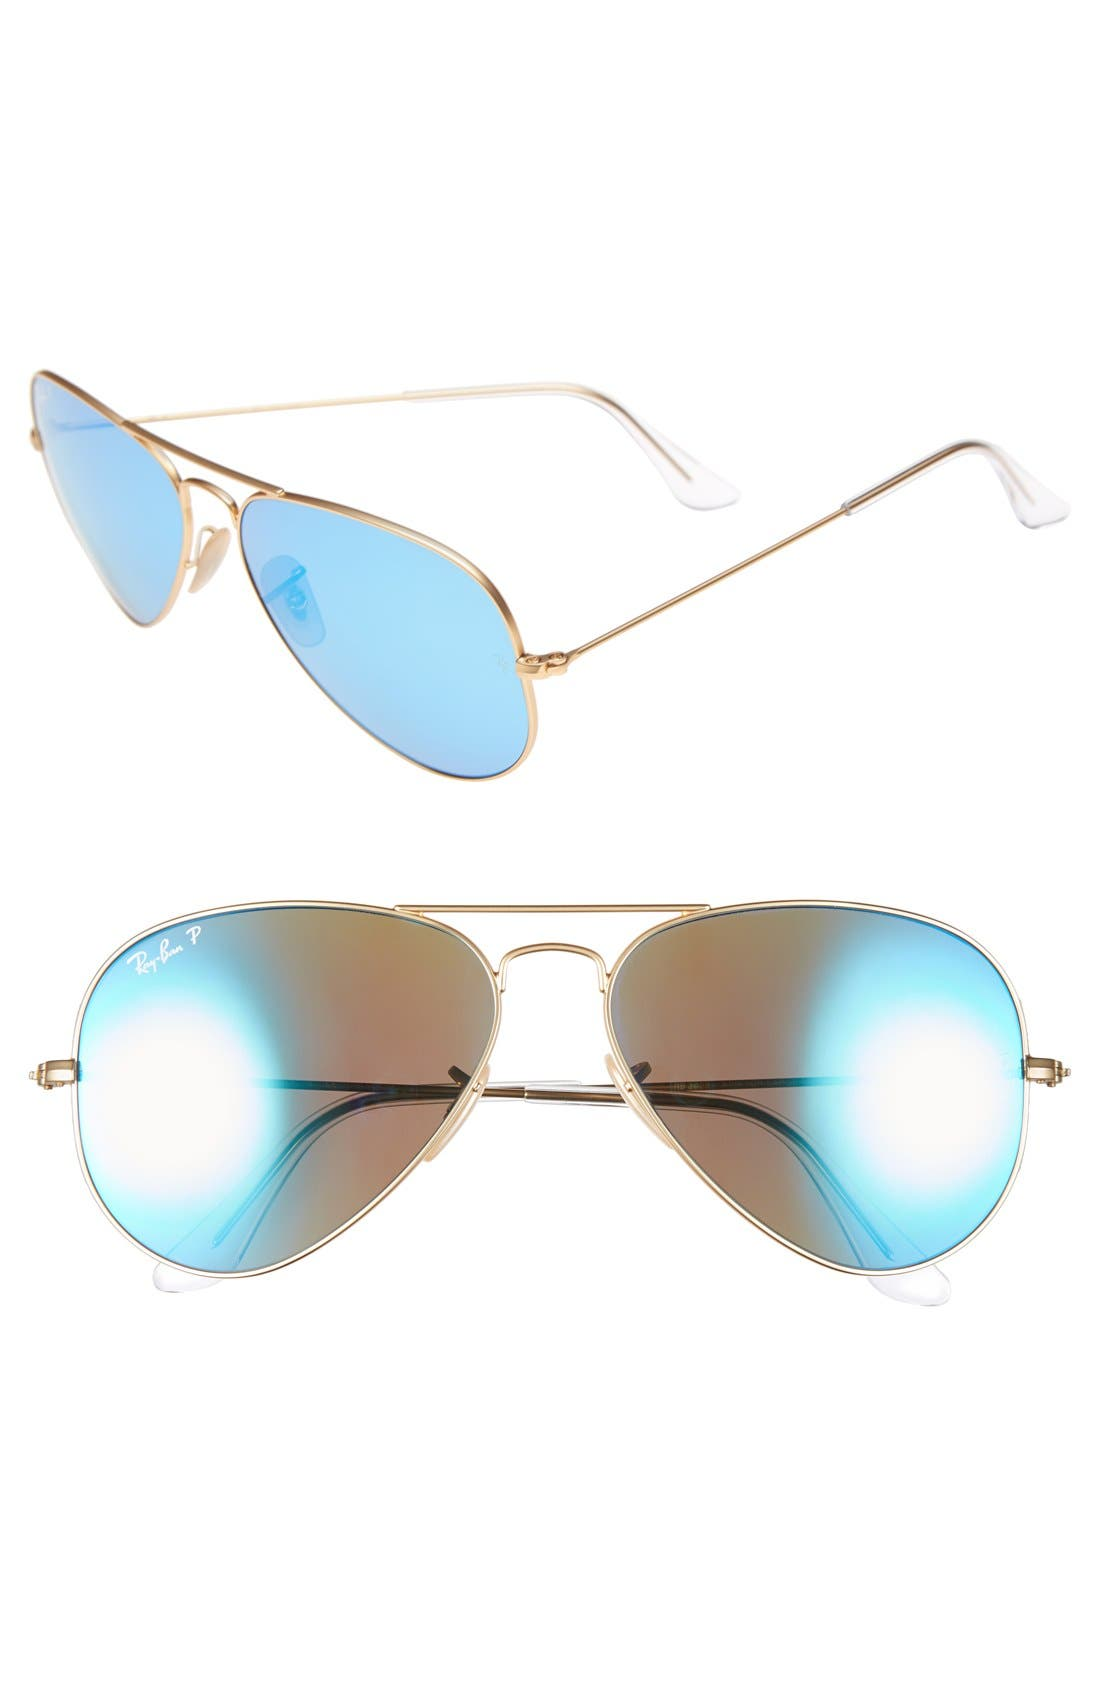 Ray-Ban Standard Icons 58mm Mirrored Polarized Aviator Sunglasses